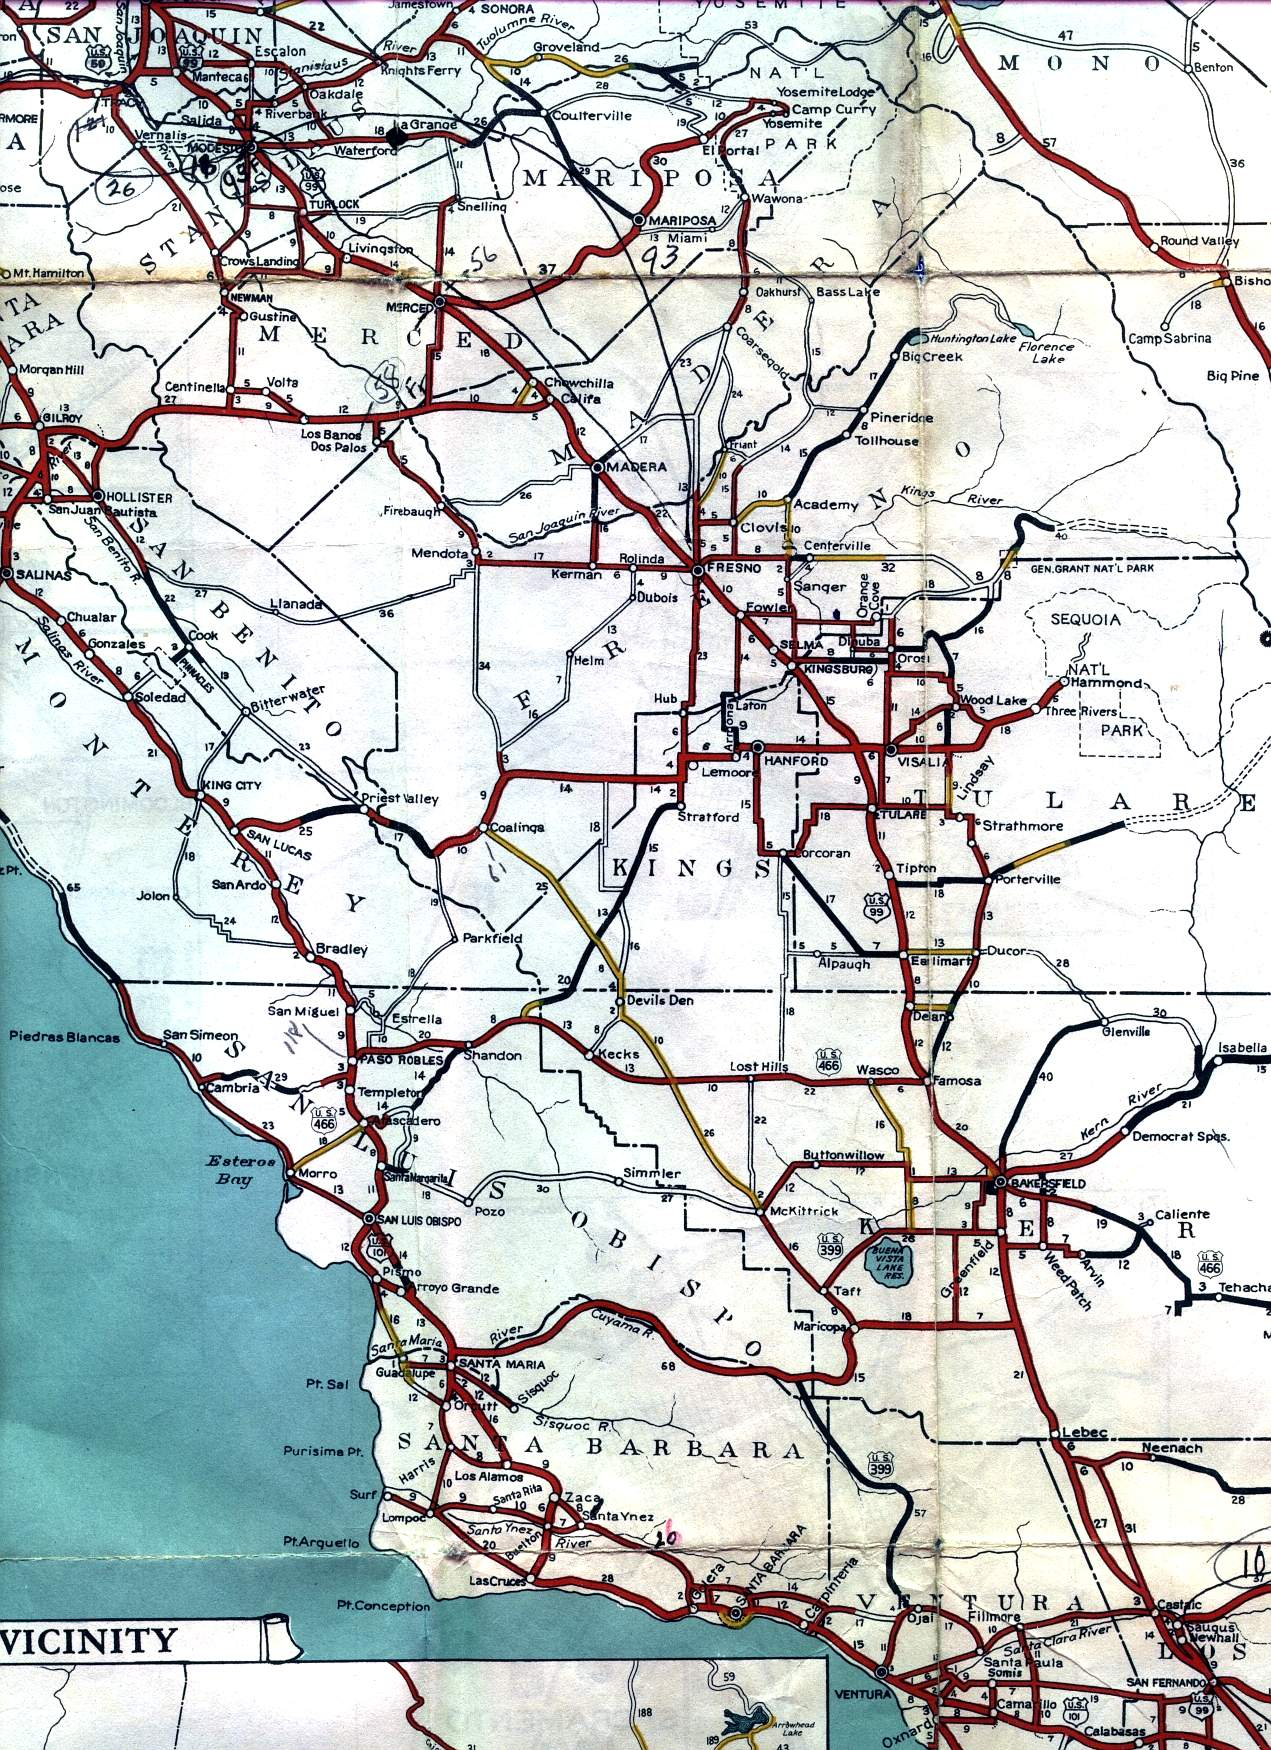 Road Map Of Central California - Klipy - Central California Road Map